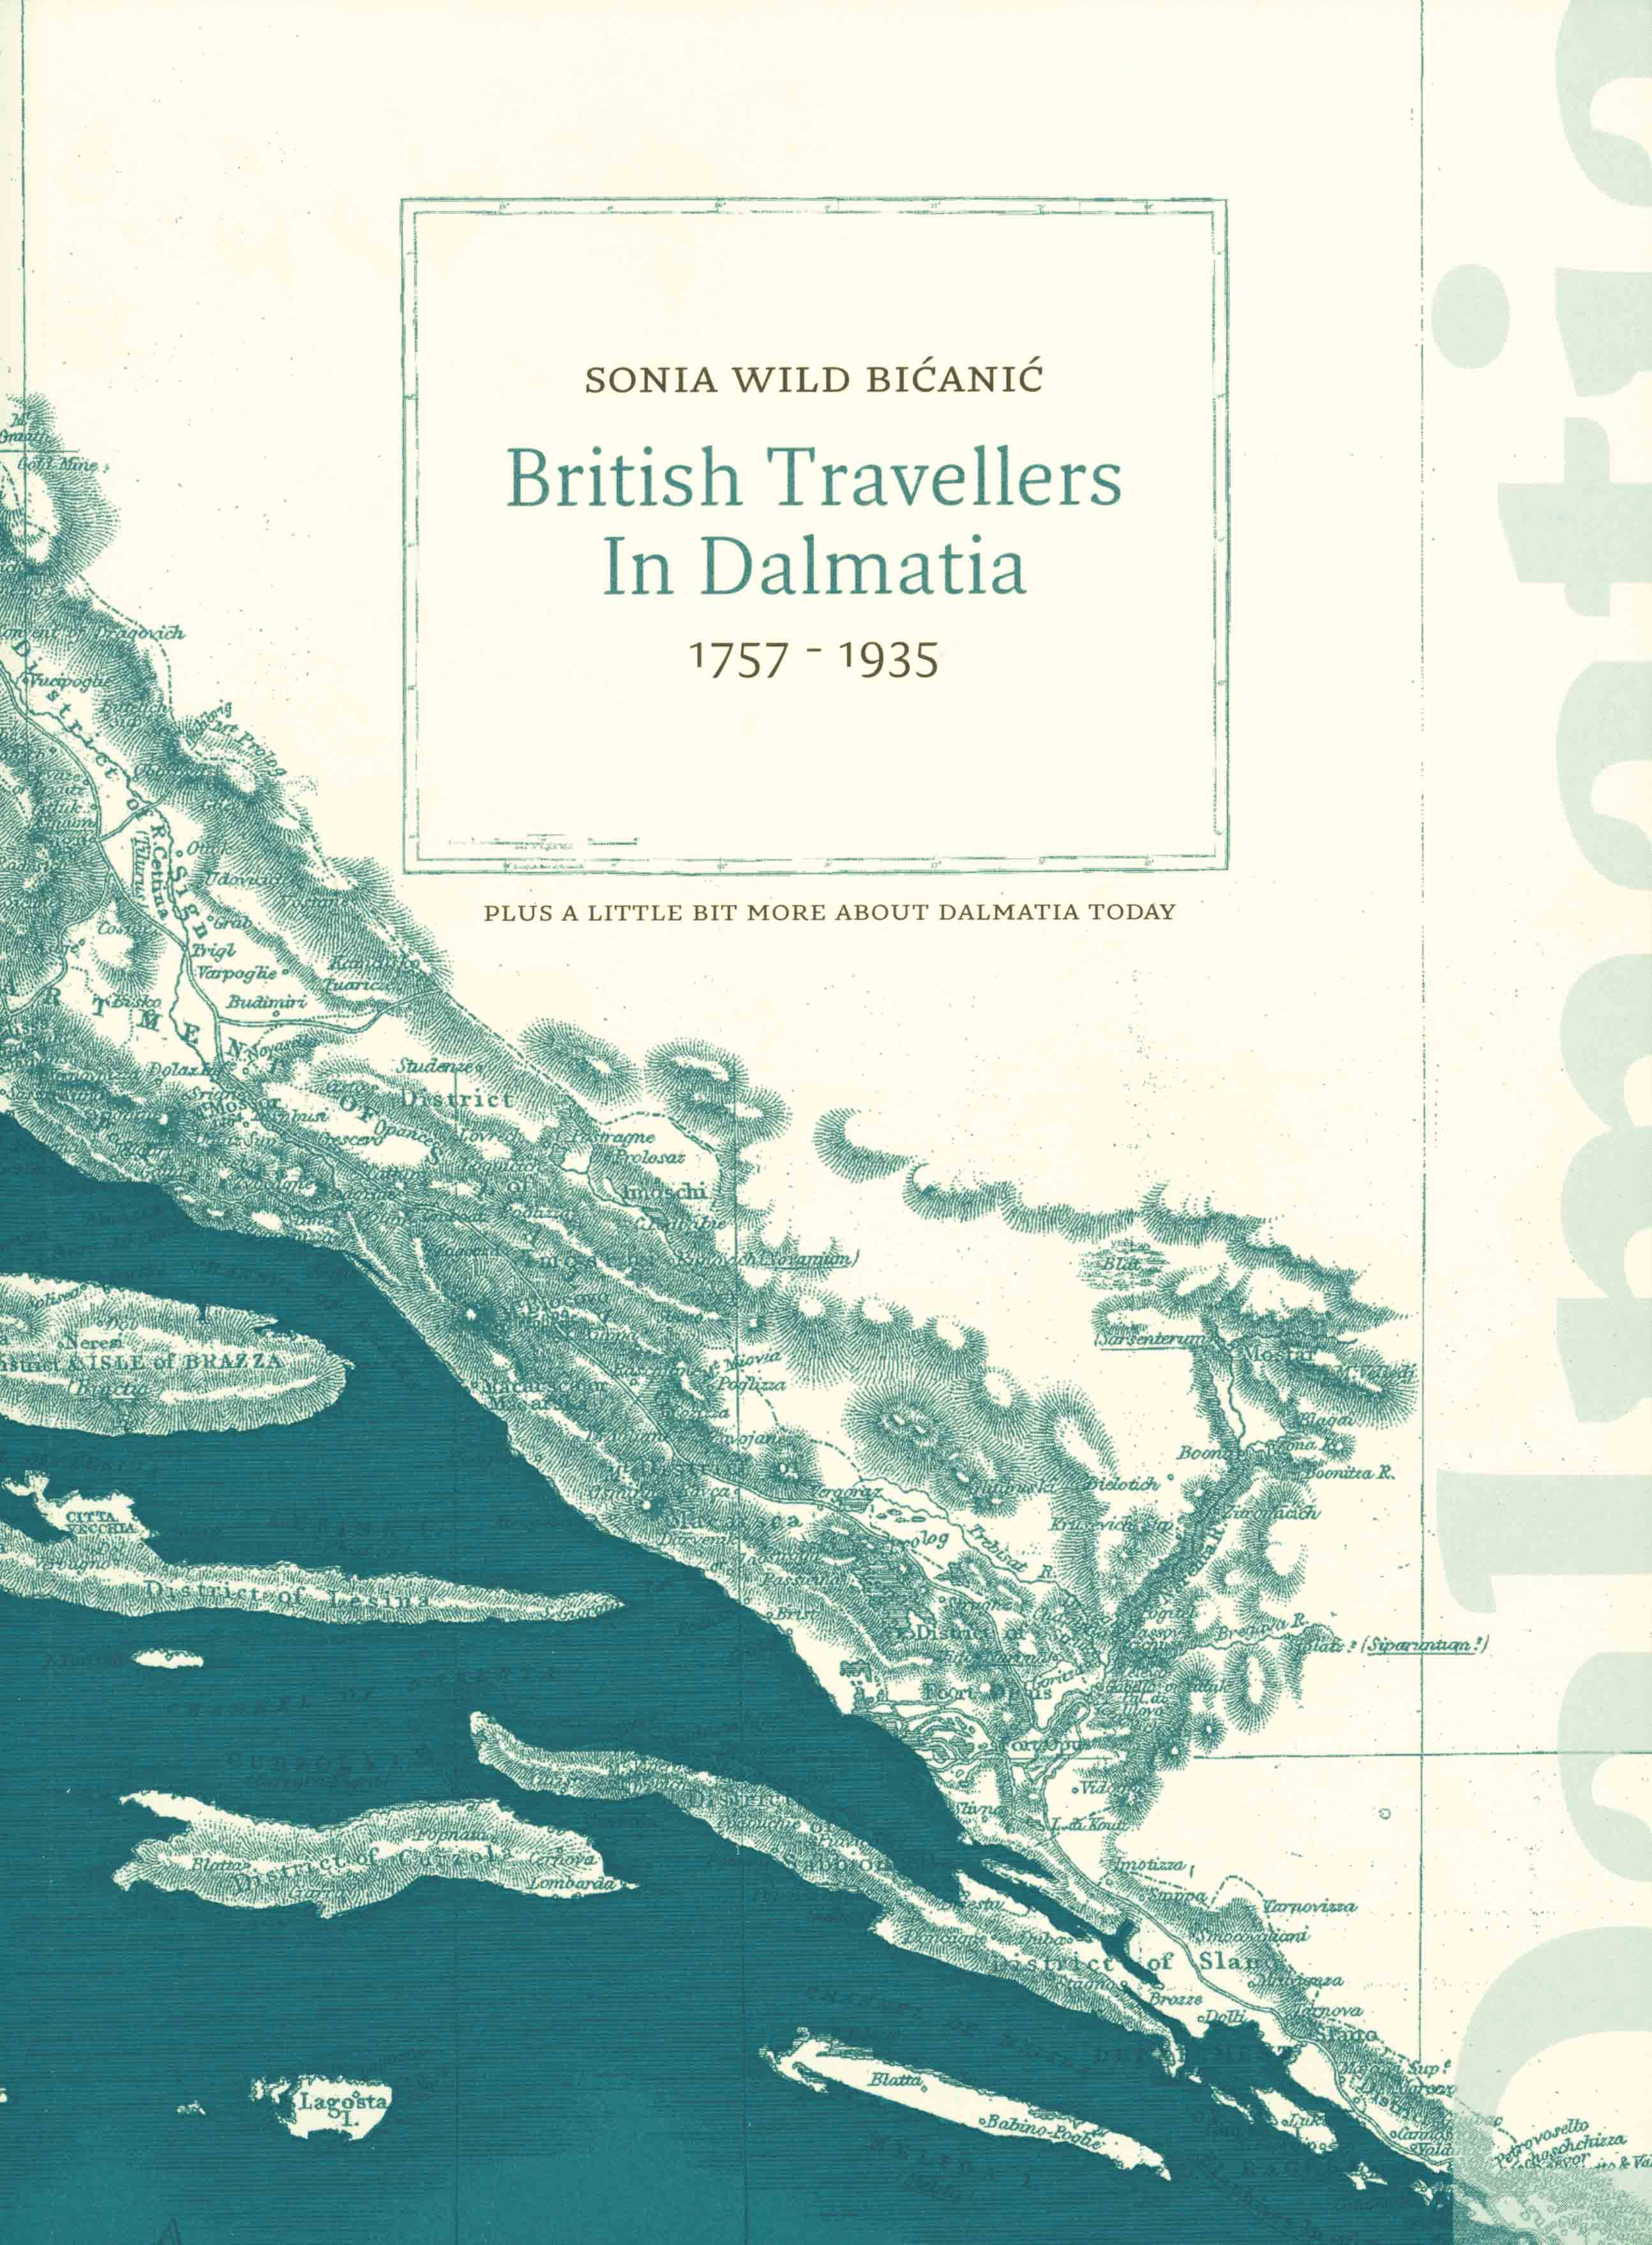 British Travellers in Dalmatia